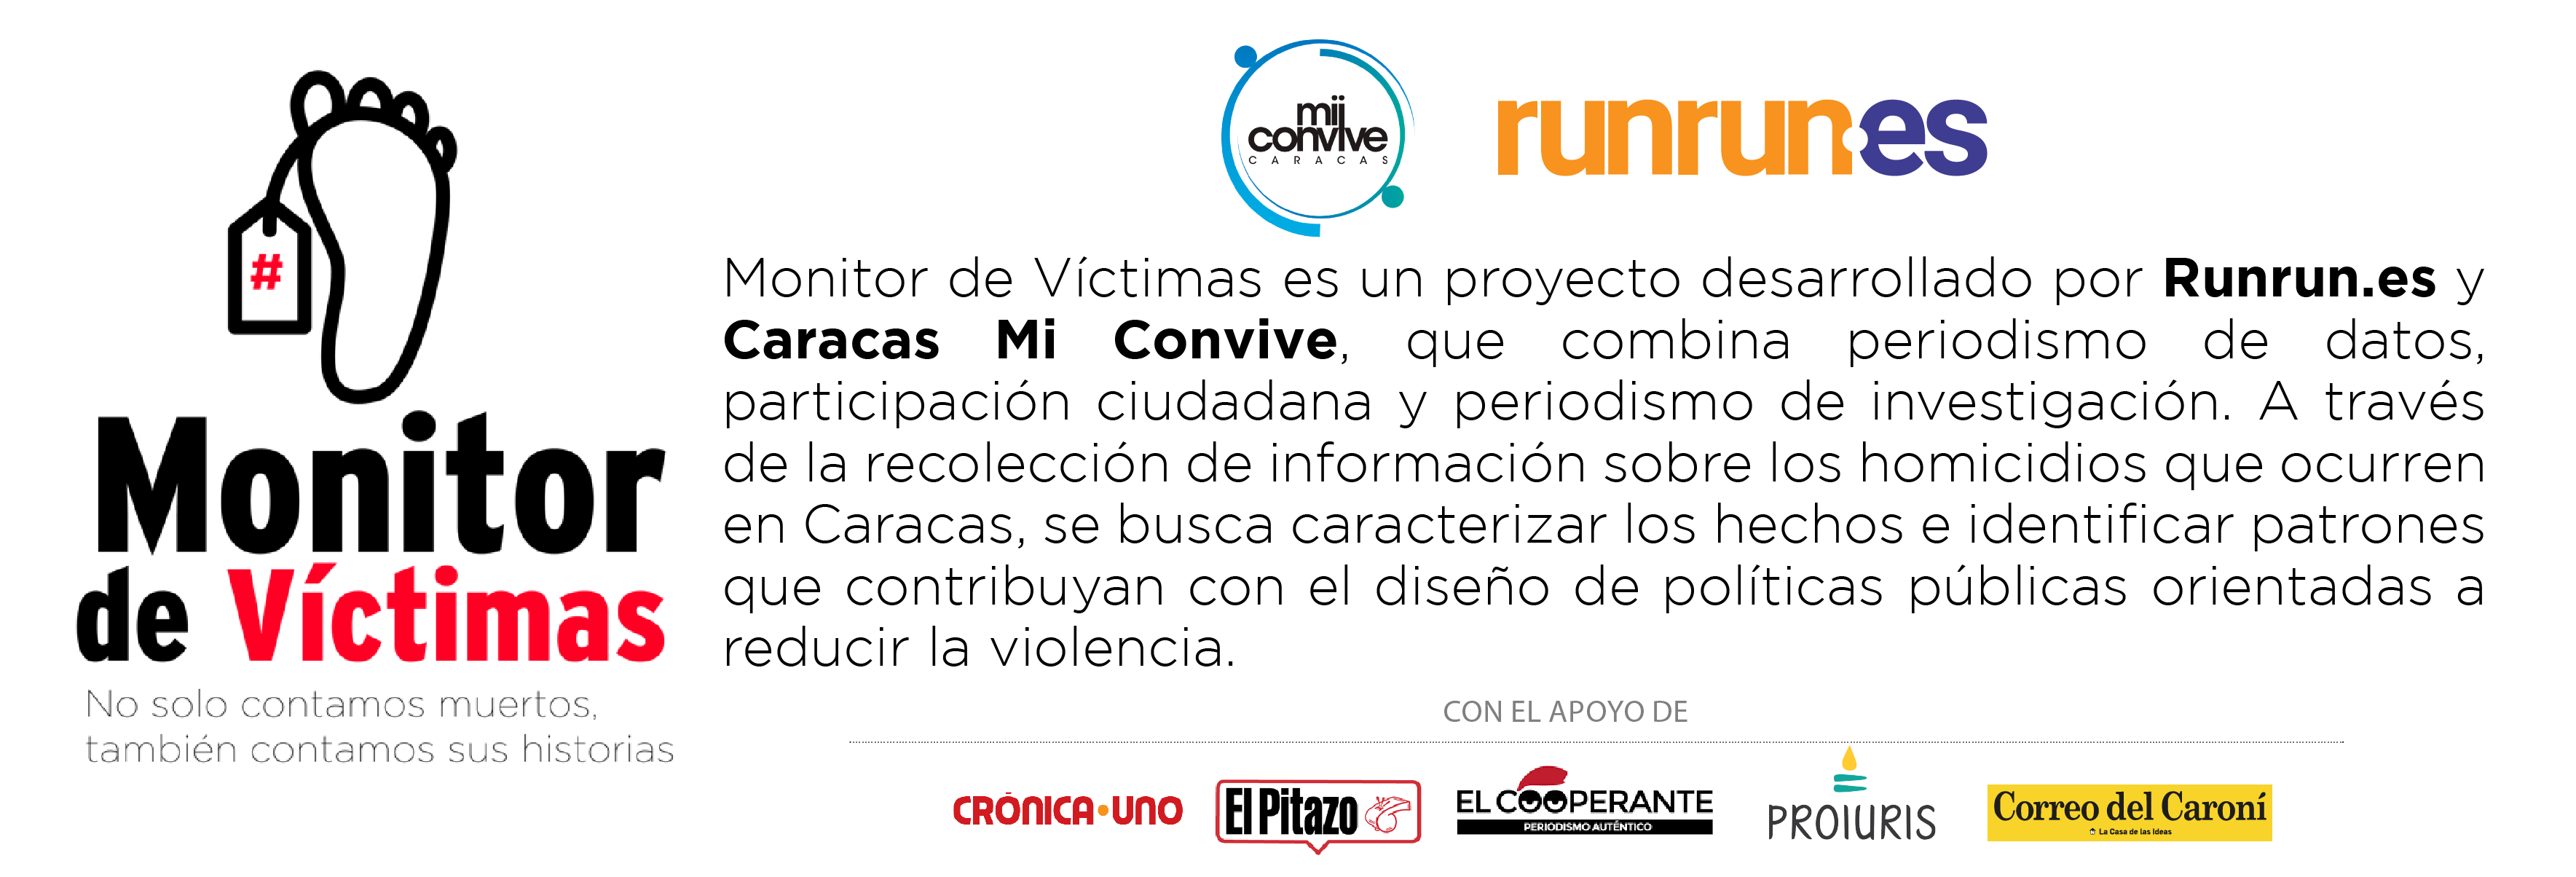 https://runrunes.org/wp-content/uploads/2019/04/cintillo-Monitor-7.png